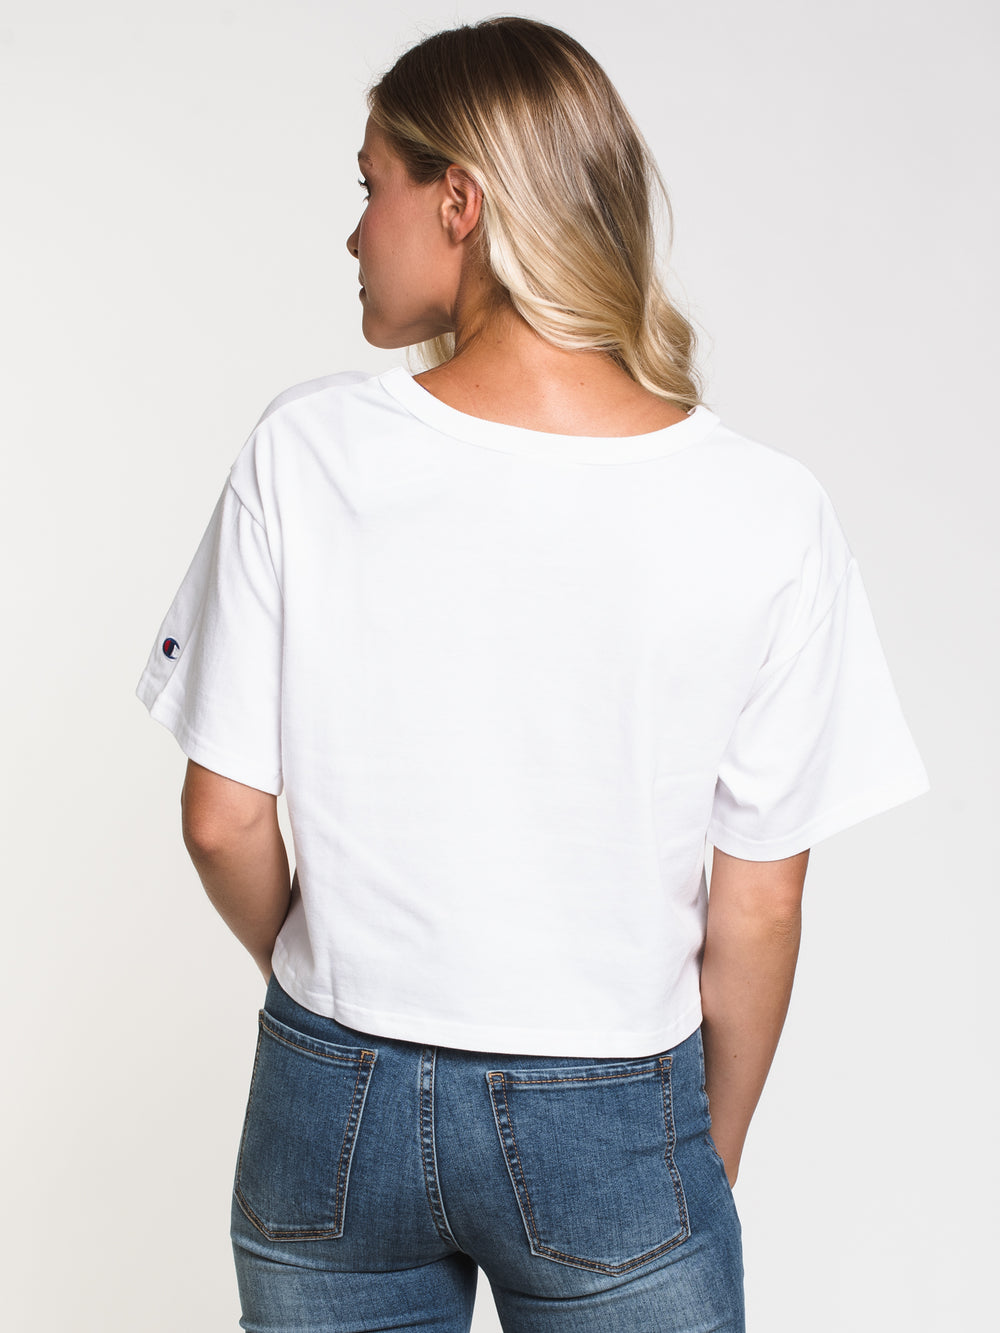 WOMENS HERITAGE CROPPED TEE - WHITE